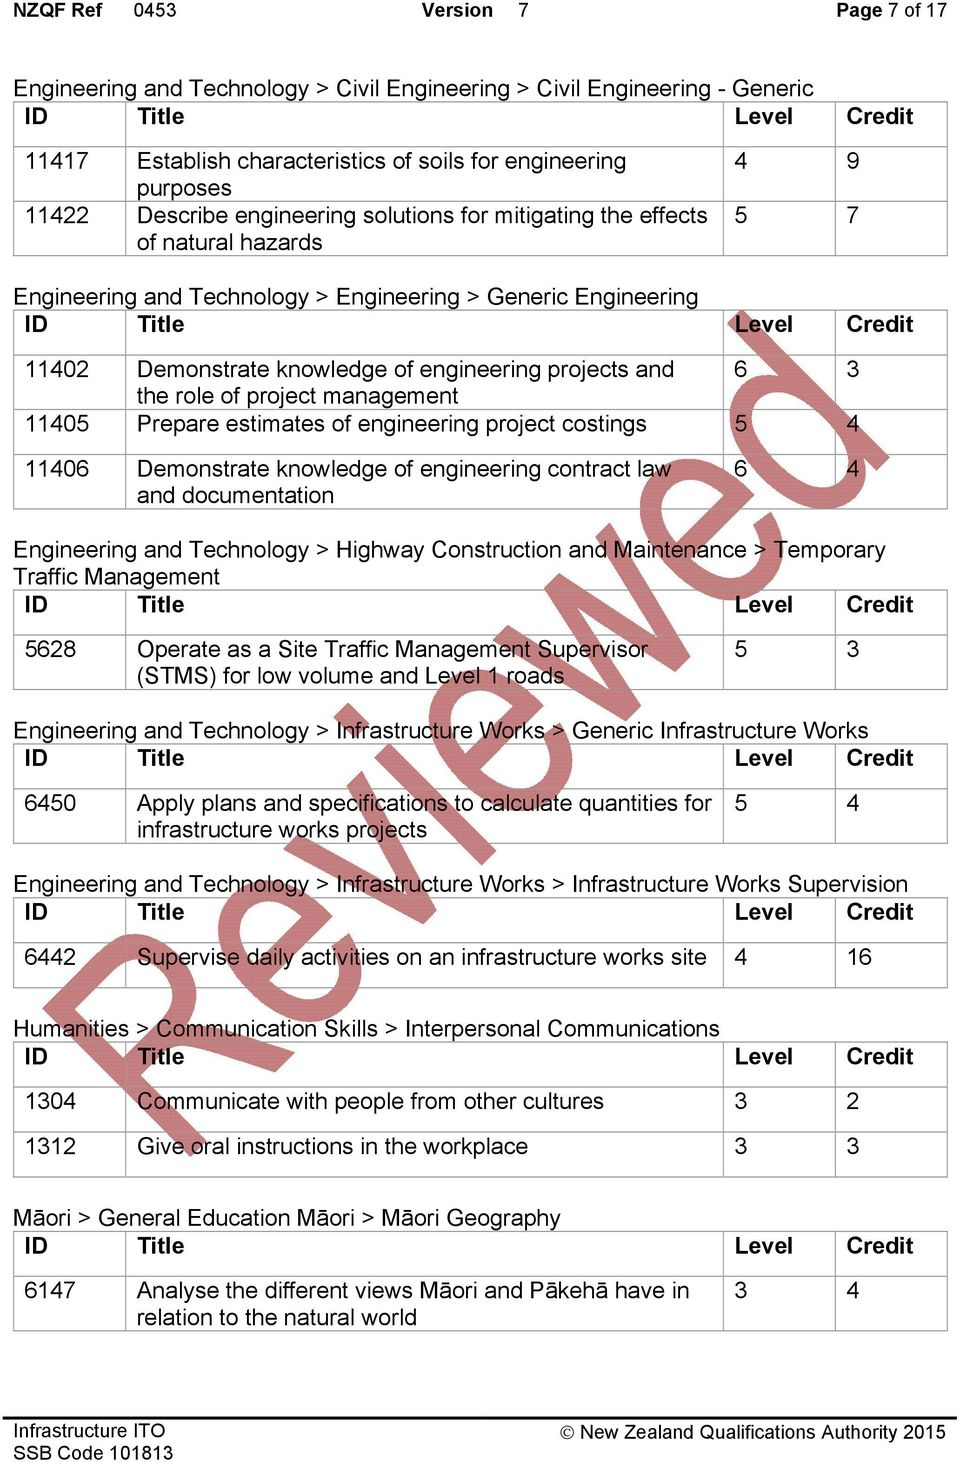 the role of project management 11405 Prepare estimates of engineering project costings 5 4 11406 Demonstrate knowledge of engineering contract law and documentation 6 4 Engineering and Technology >